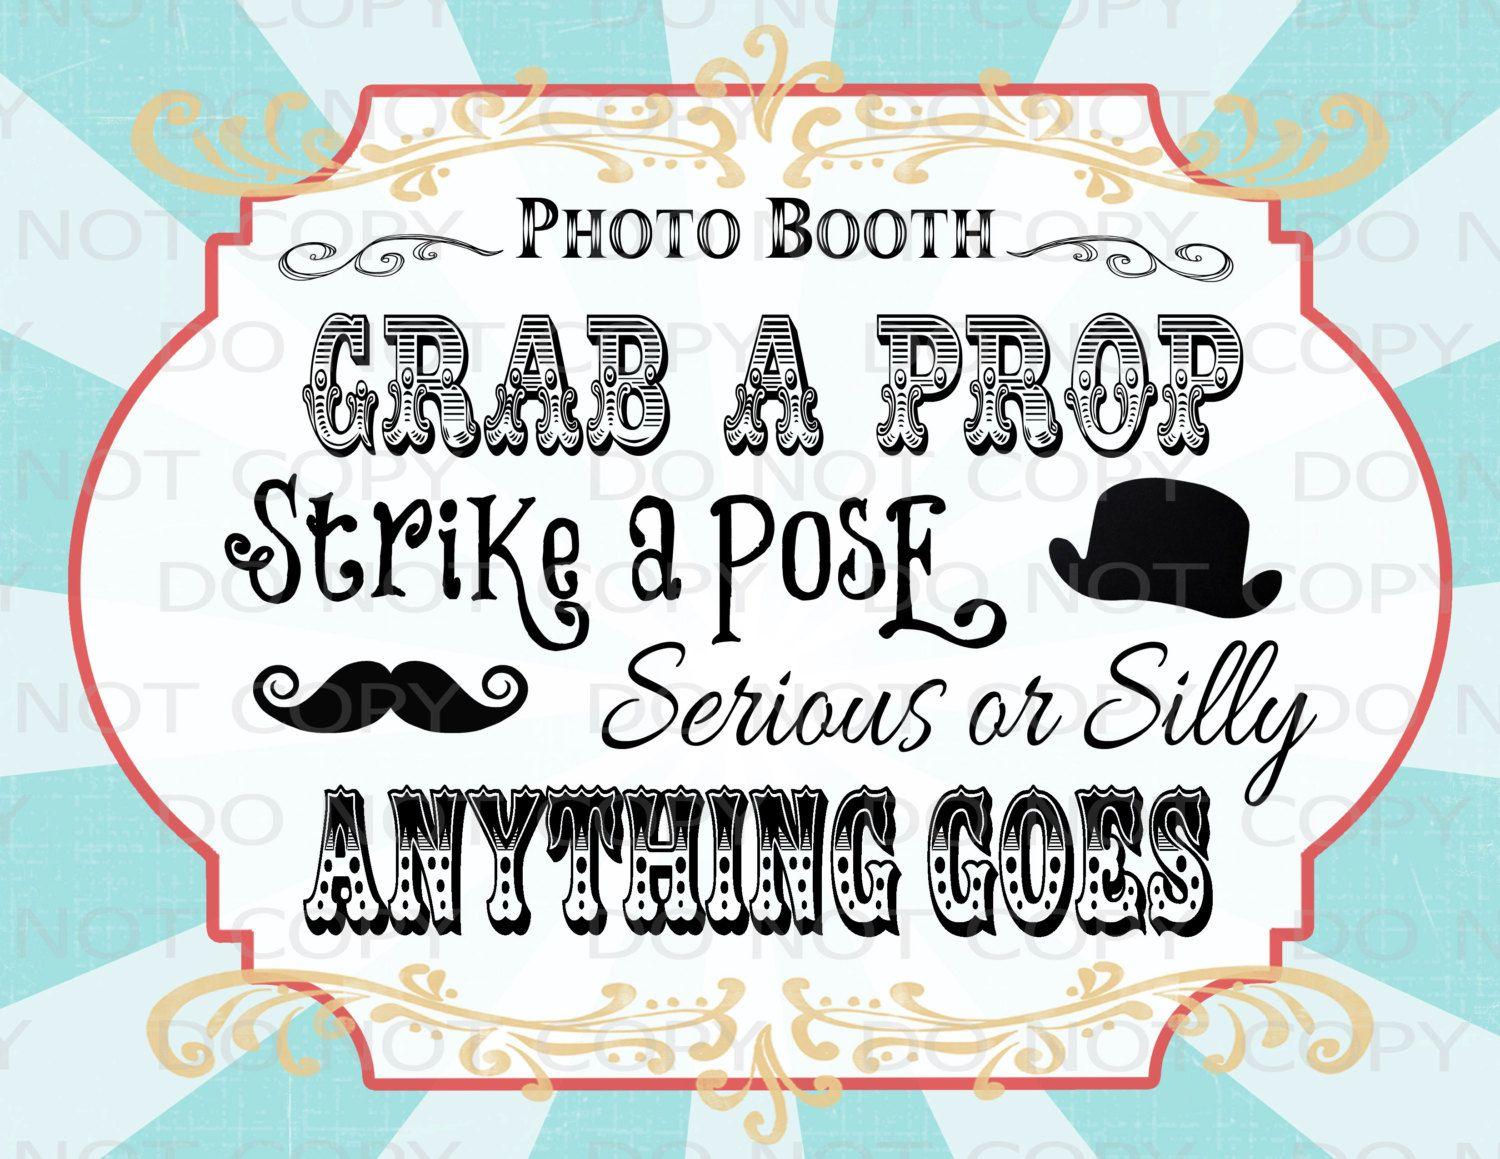 carnival photo booth sign google search crafts. Black Bedroom Furniture Sets. Home Design Ideas